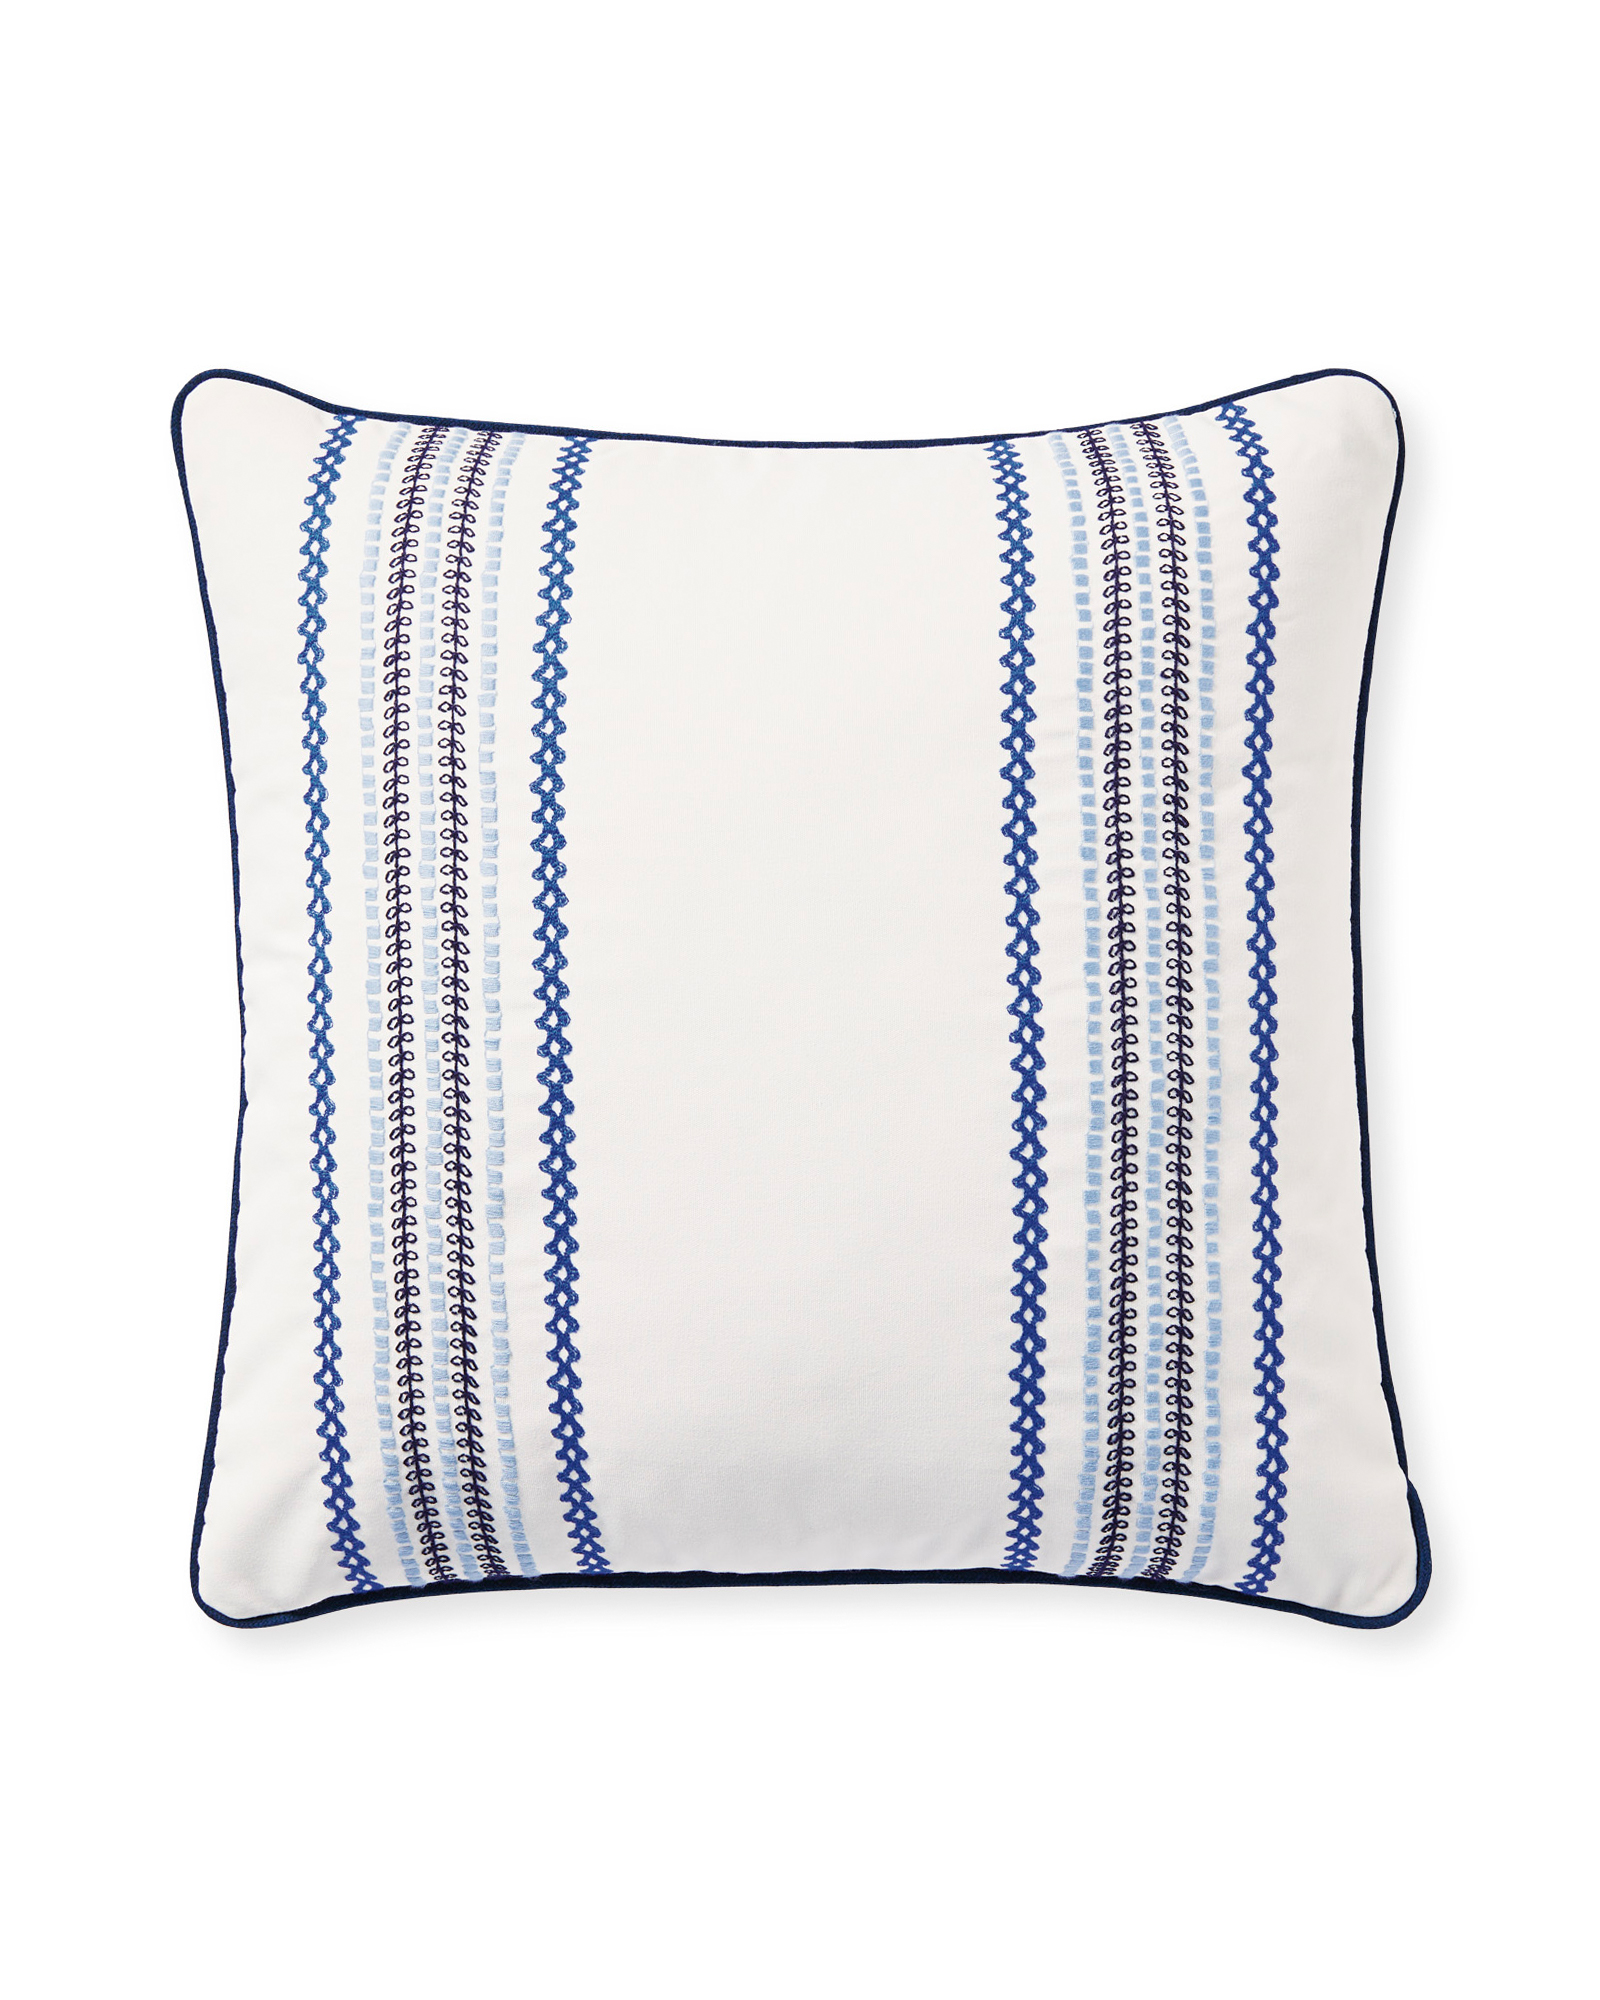 Aveiro Pillow Cover, Blue Multi